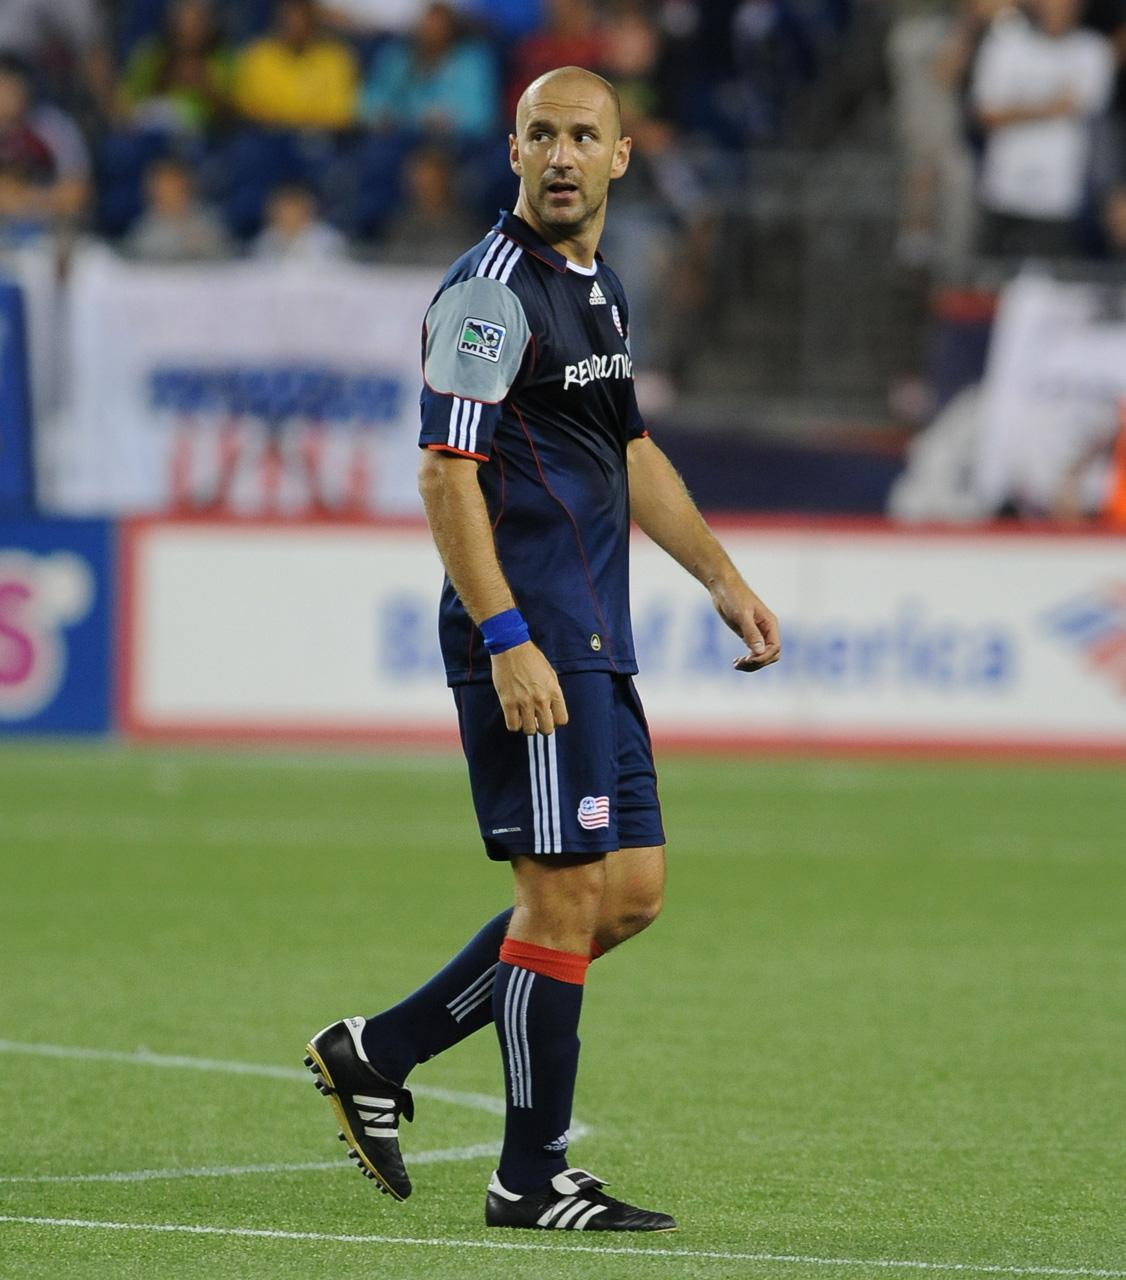 Ilija Stolica has two goals and one assist in seven appearances despite struggling with the long-distance travel in MLS